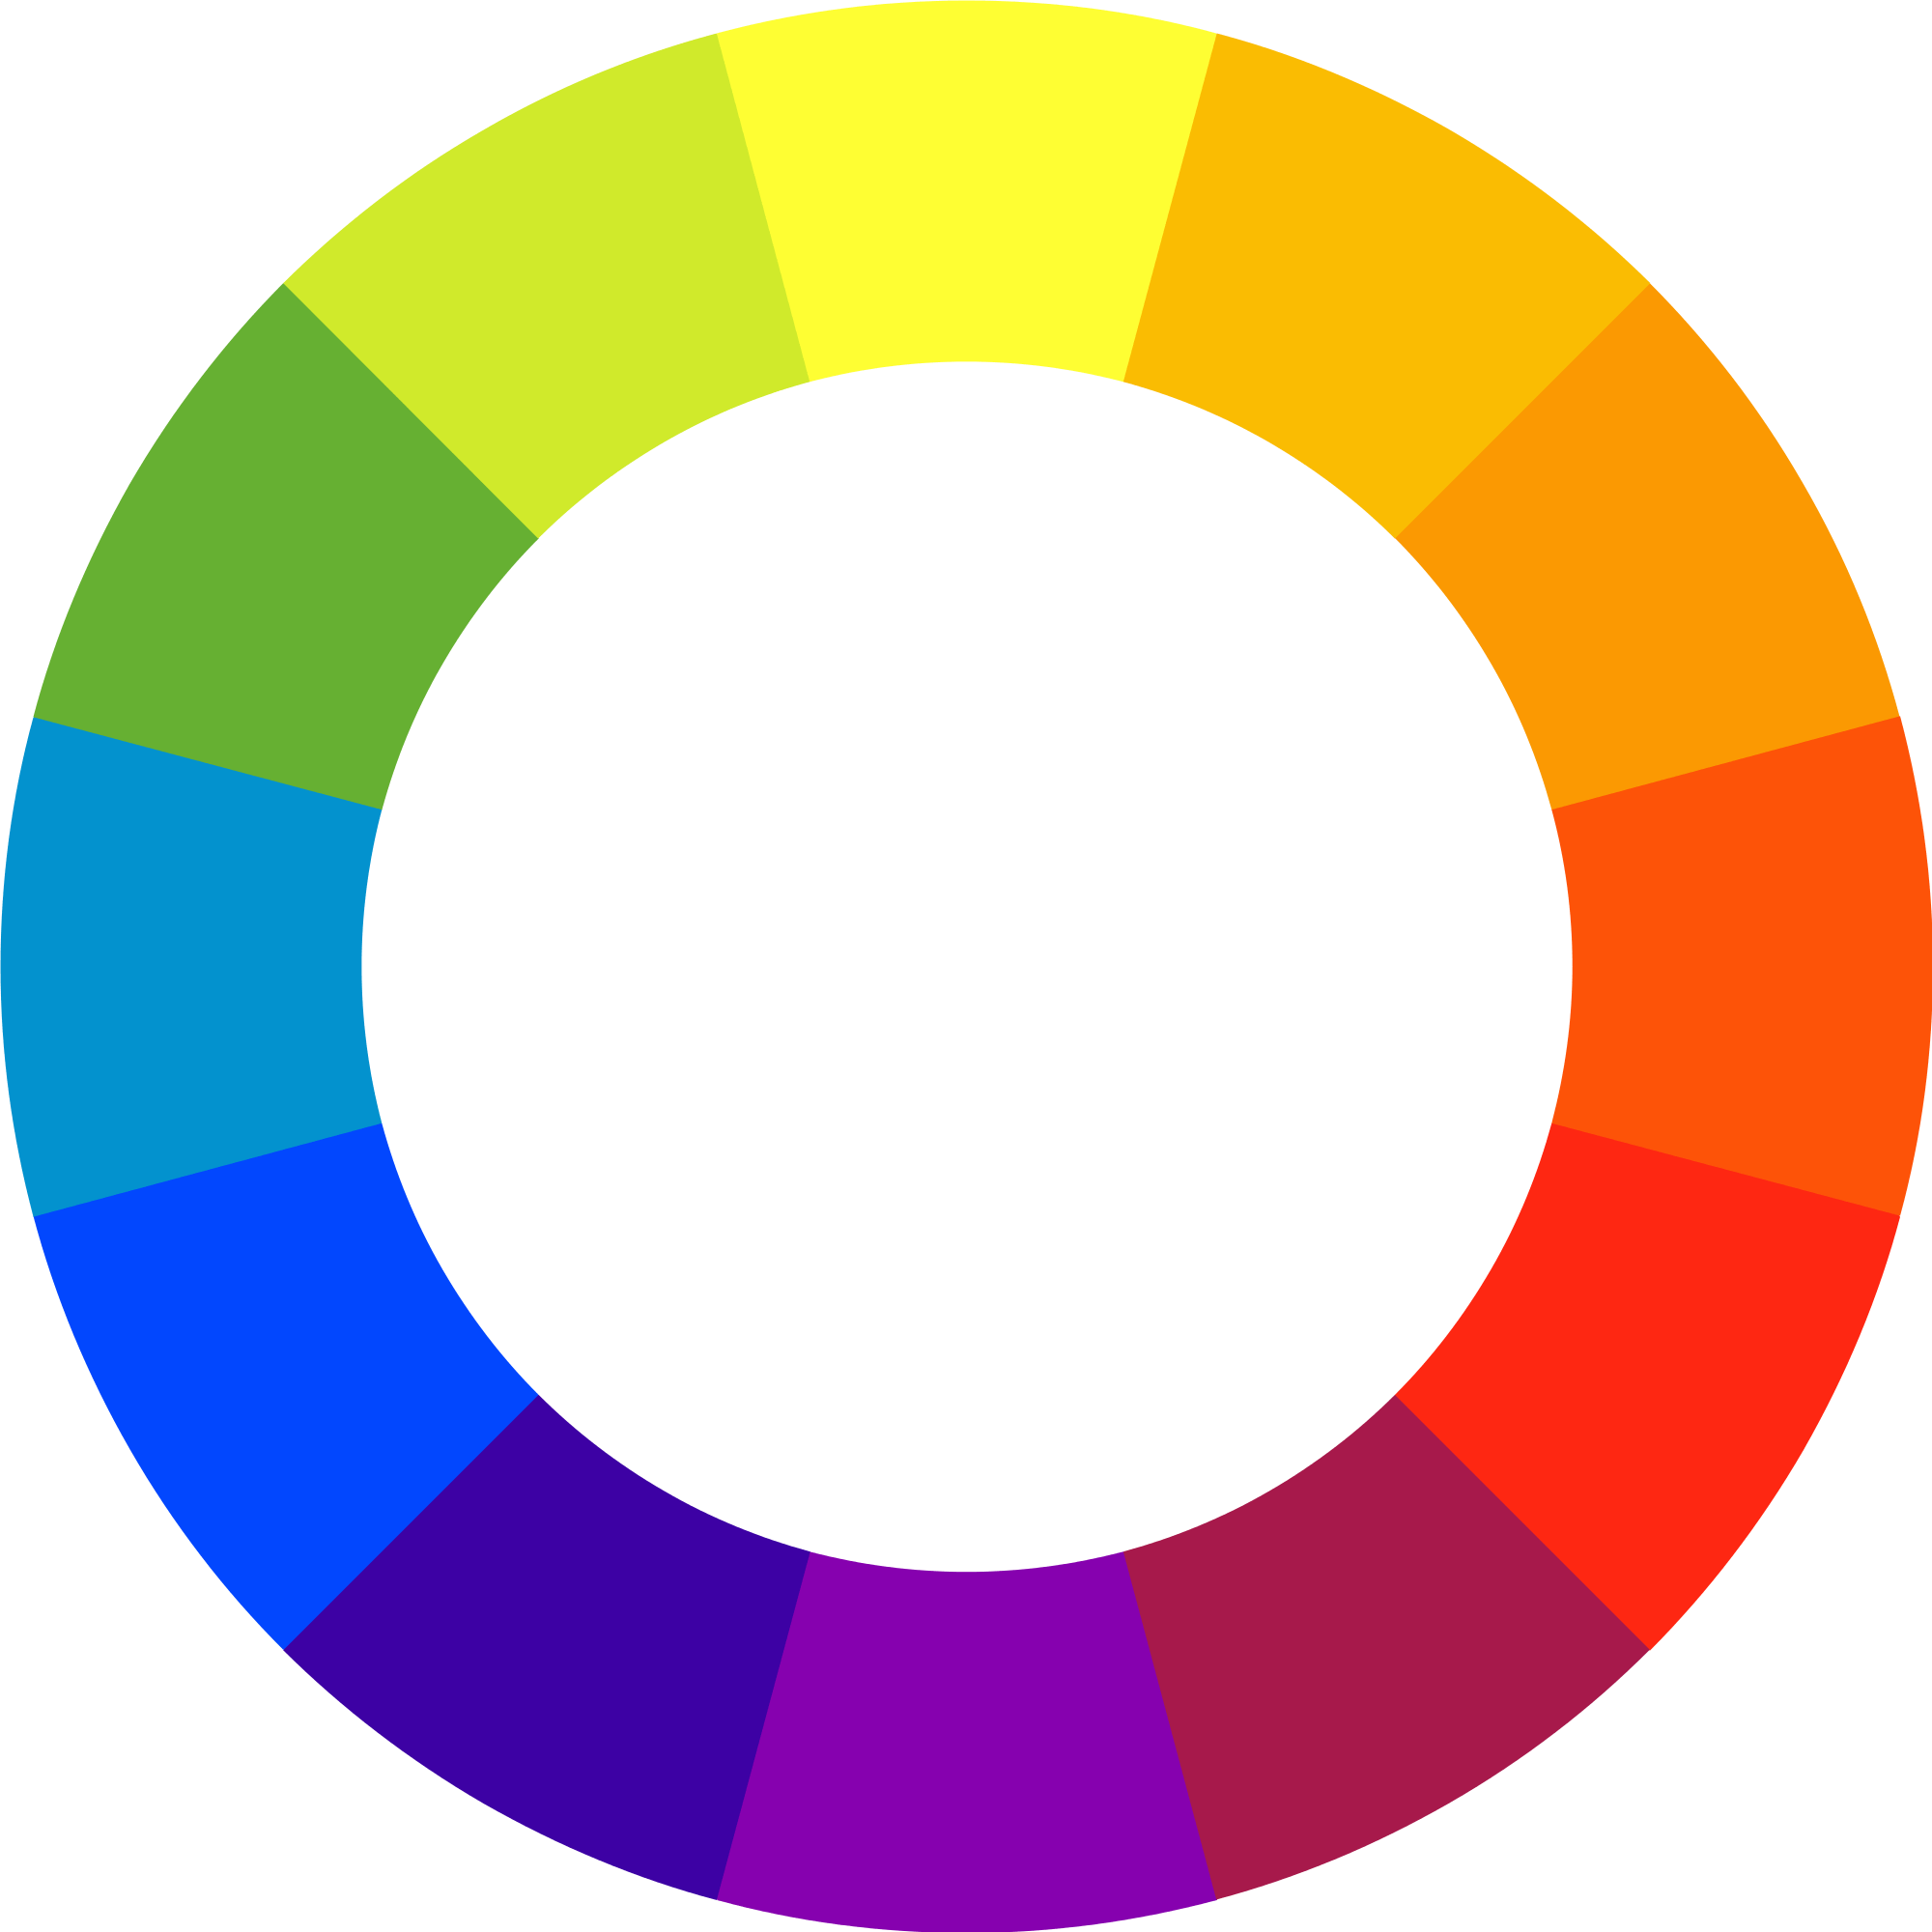 Color palette png. The underestimated power of